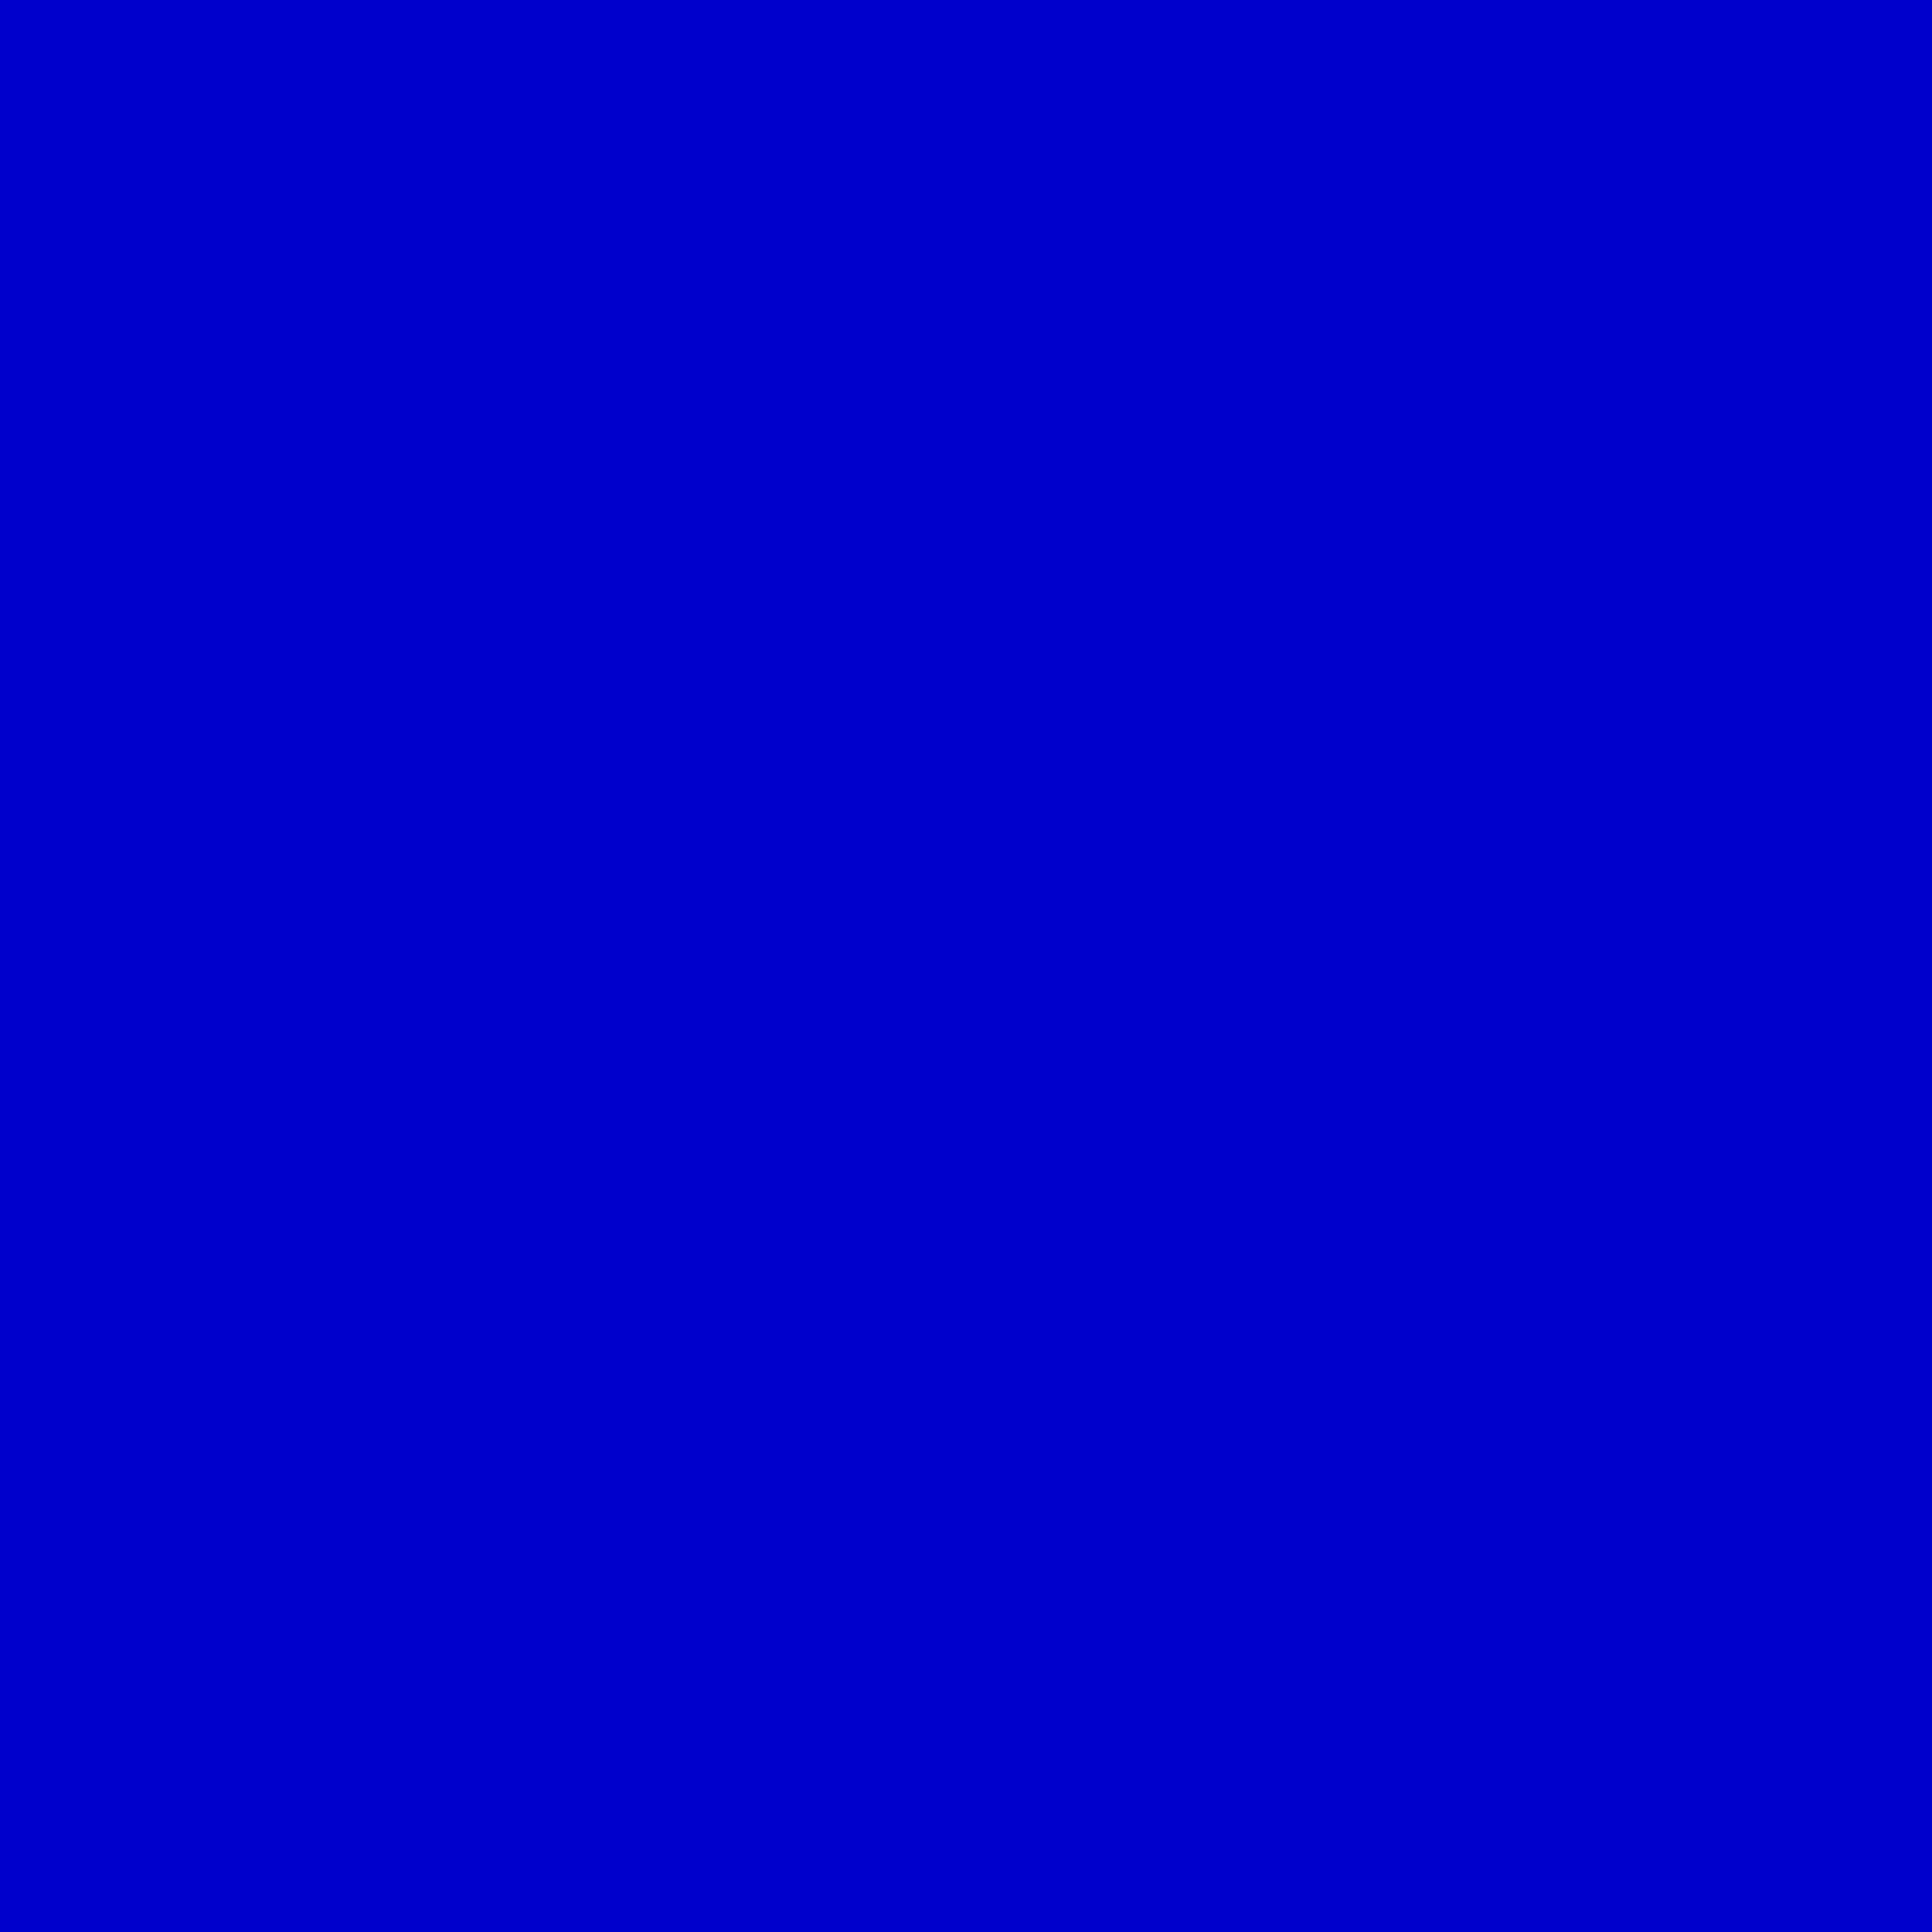 2732x2732 Medium Blue Solid Color Background